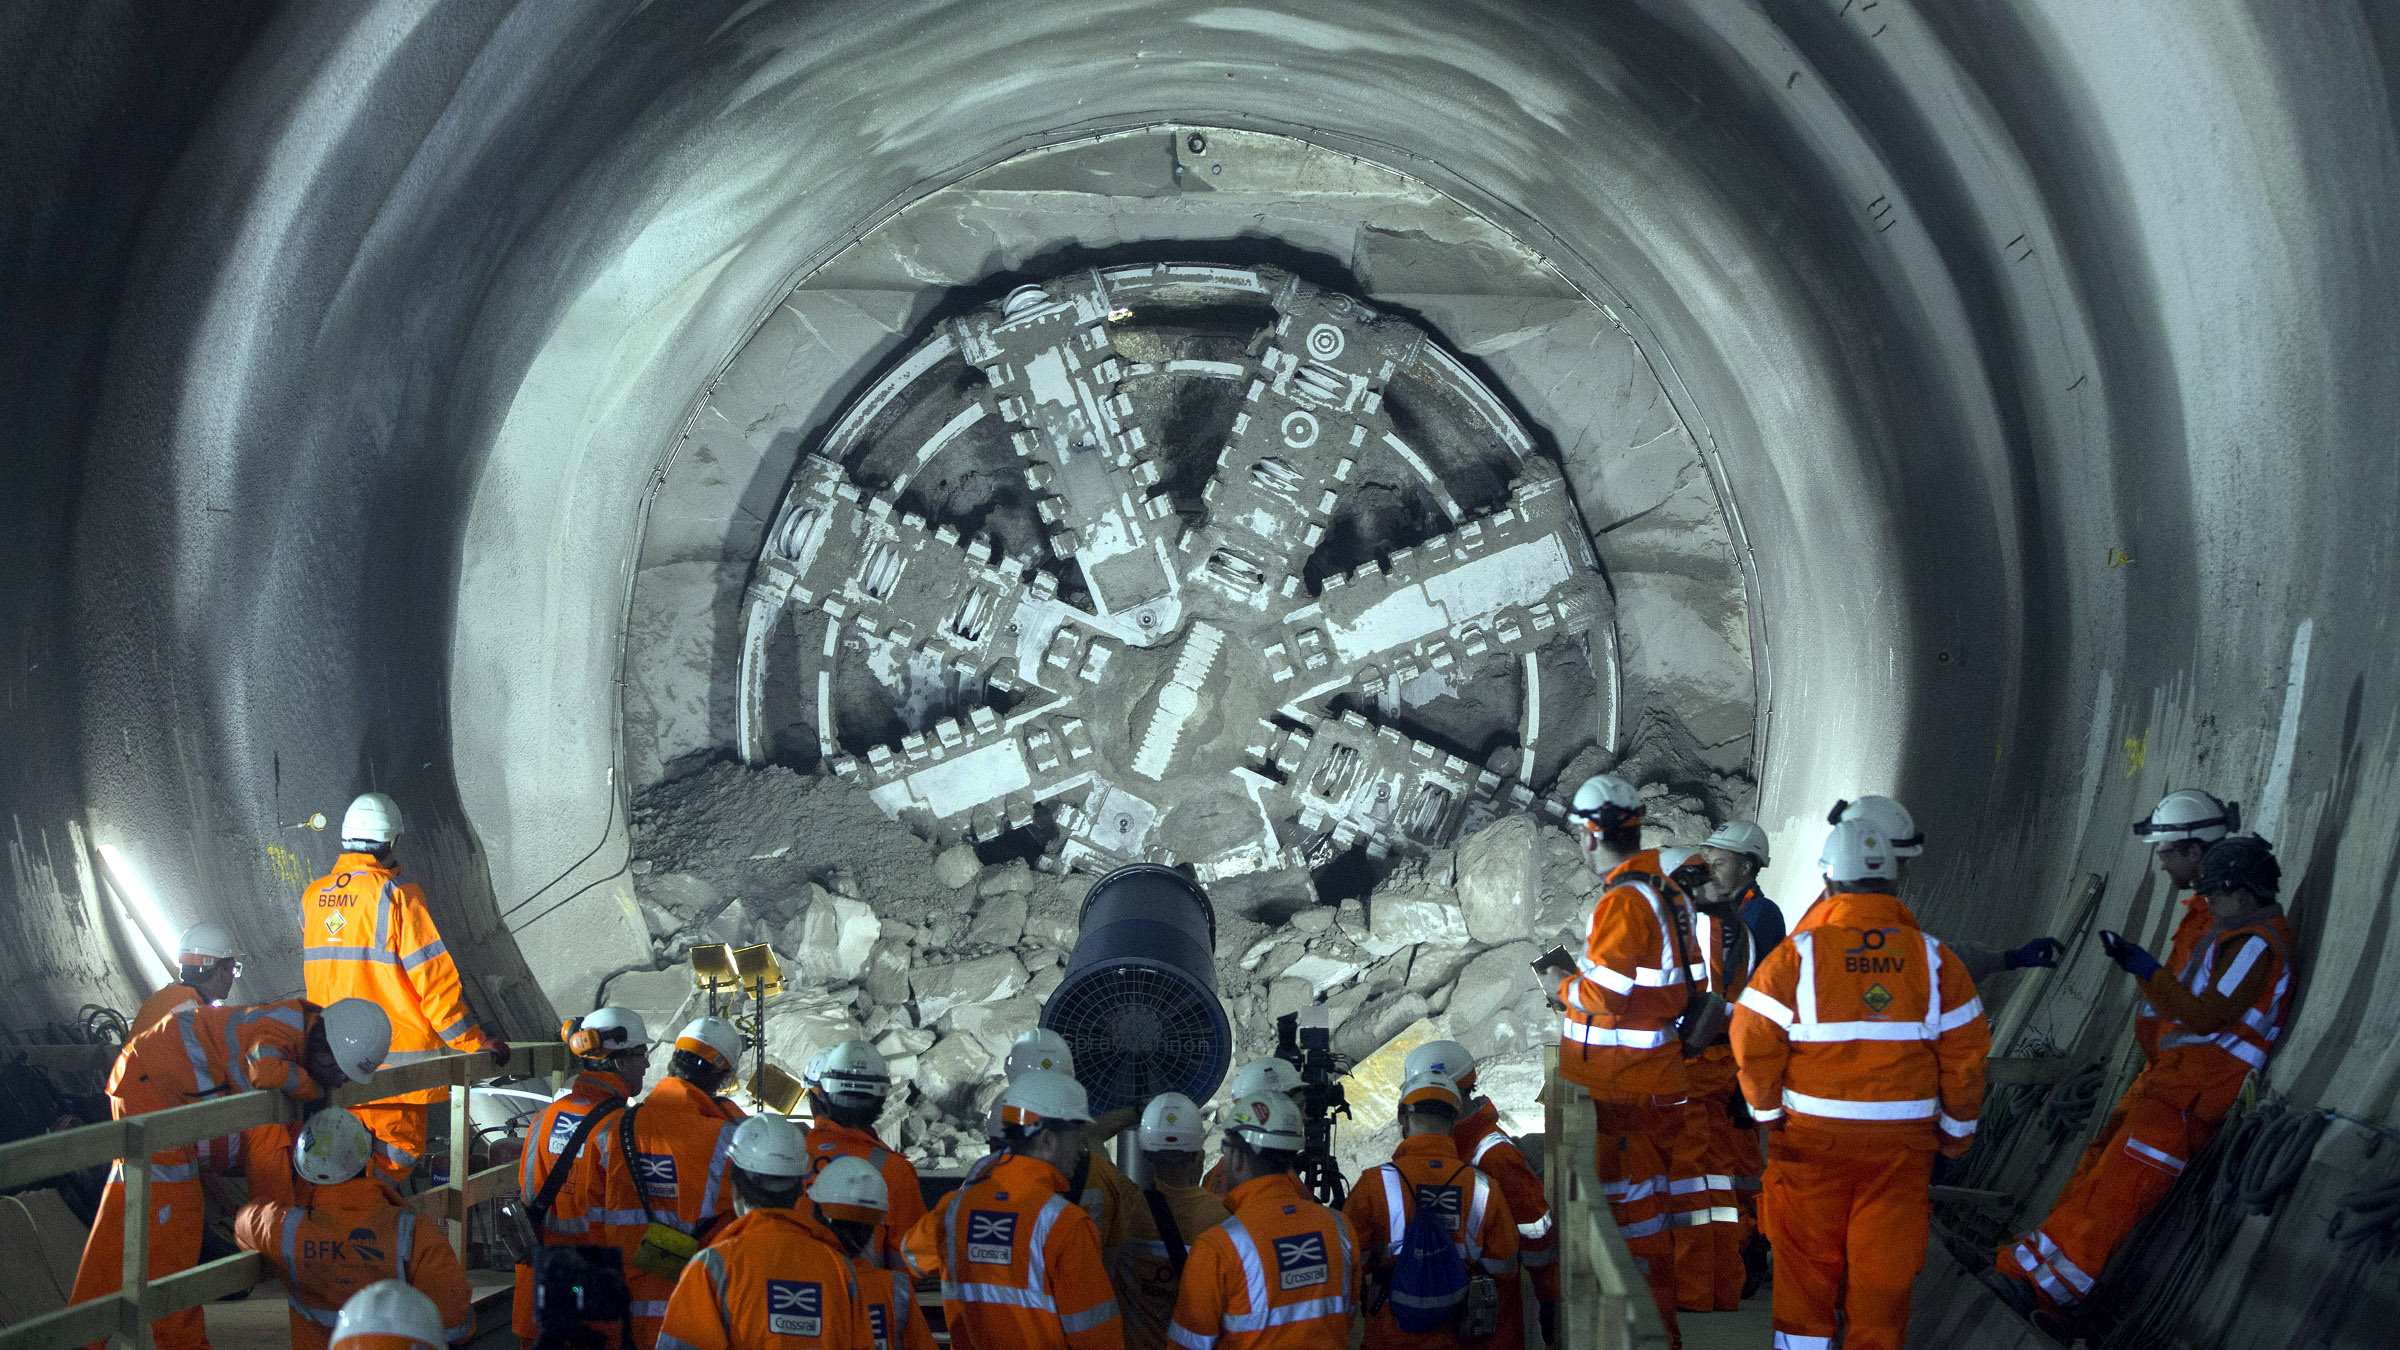 Workers view the tunnel boring machine Victoria as it breaks into the eastern end of the Liverpool Street Crossrail station in London, March 10, 2015. Liverpool Street is one of 10 new Crossrail stations being built in London, as part of a new railway line due to be operational in 2019.